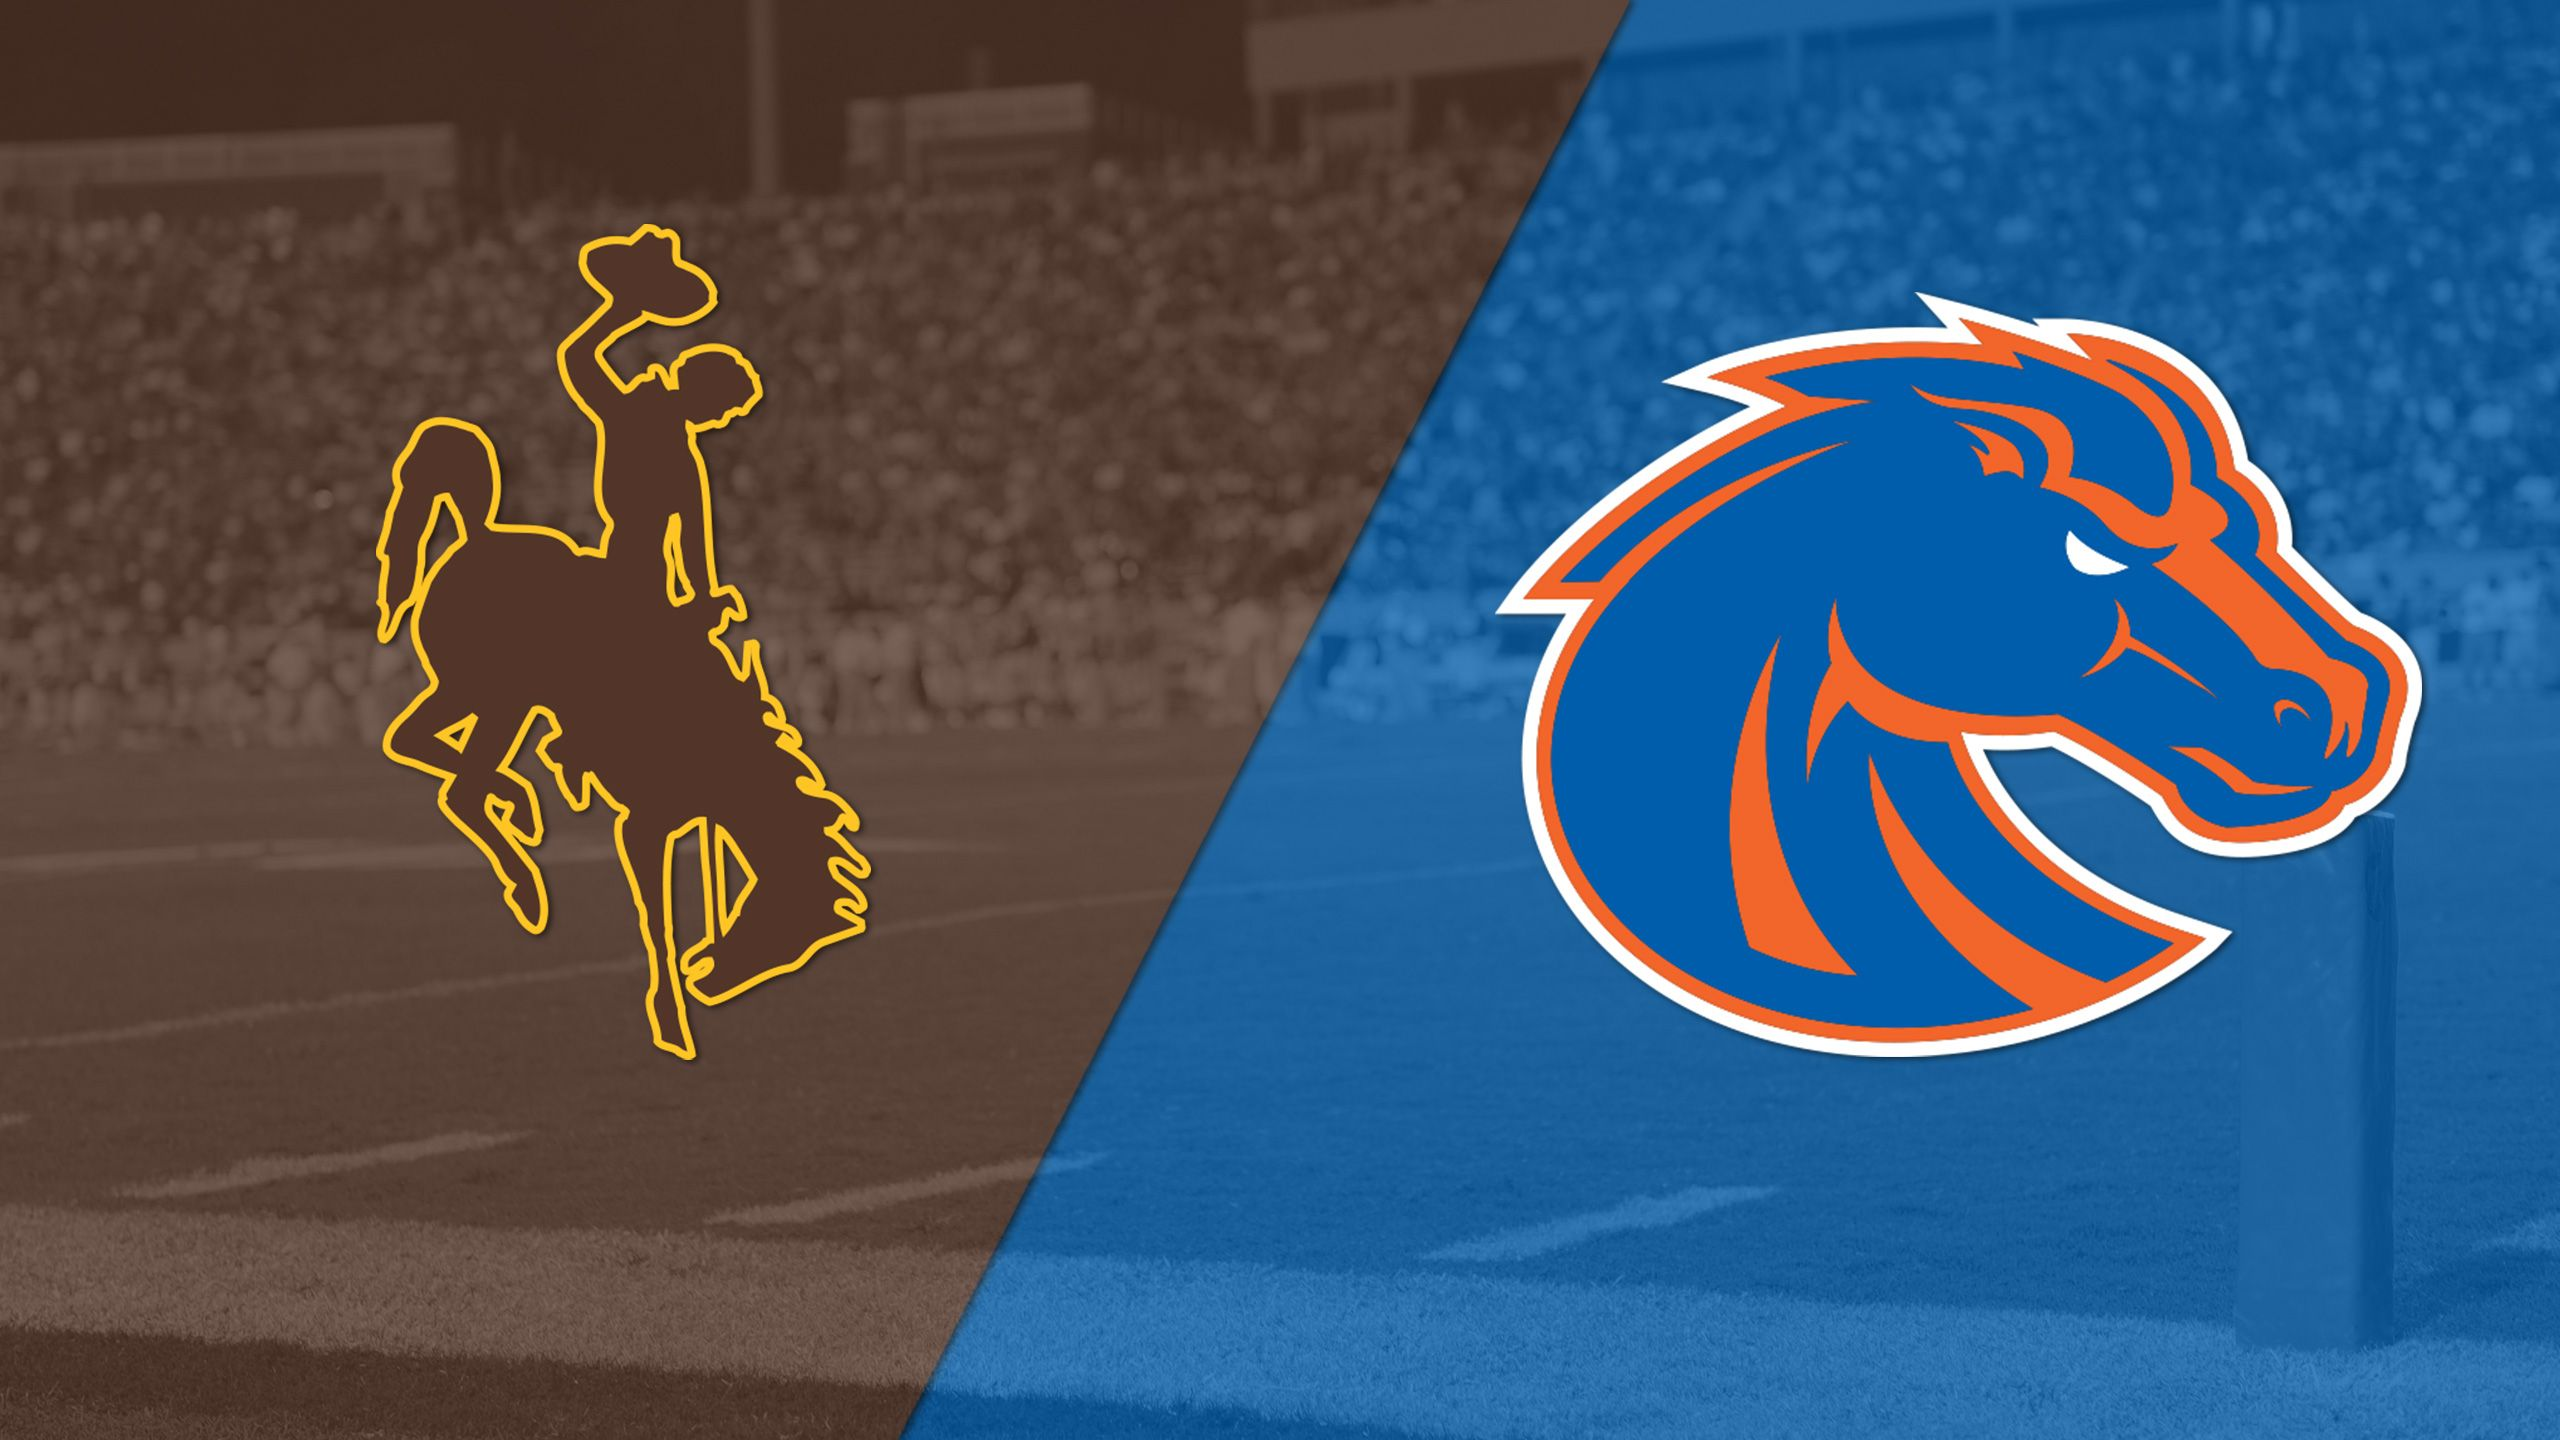 Wyoming vs. Boise State (Football)